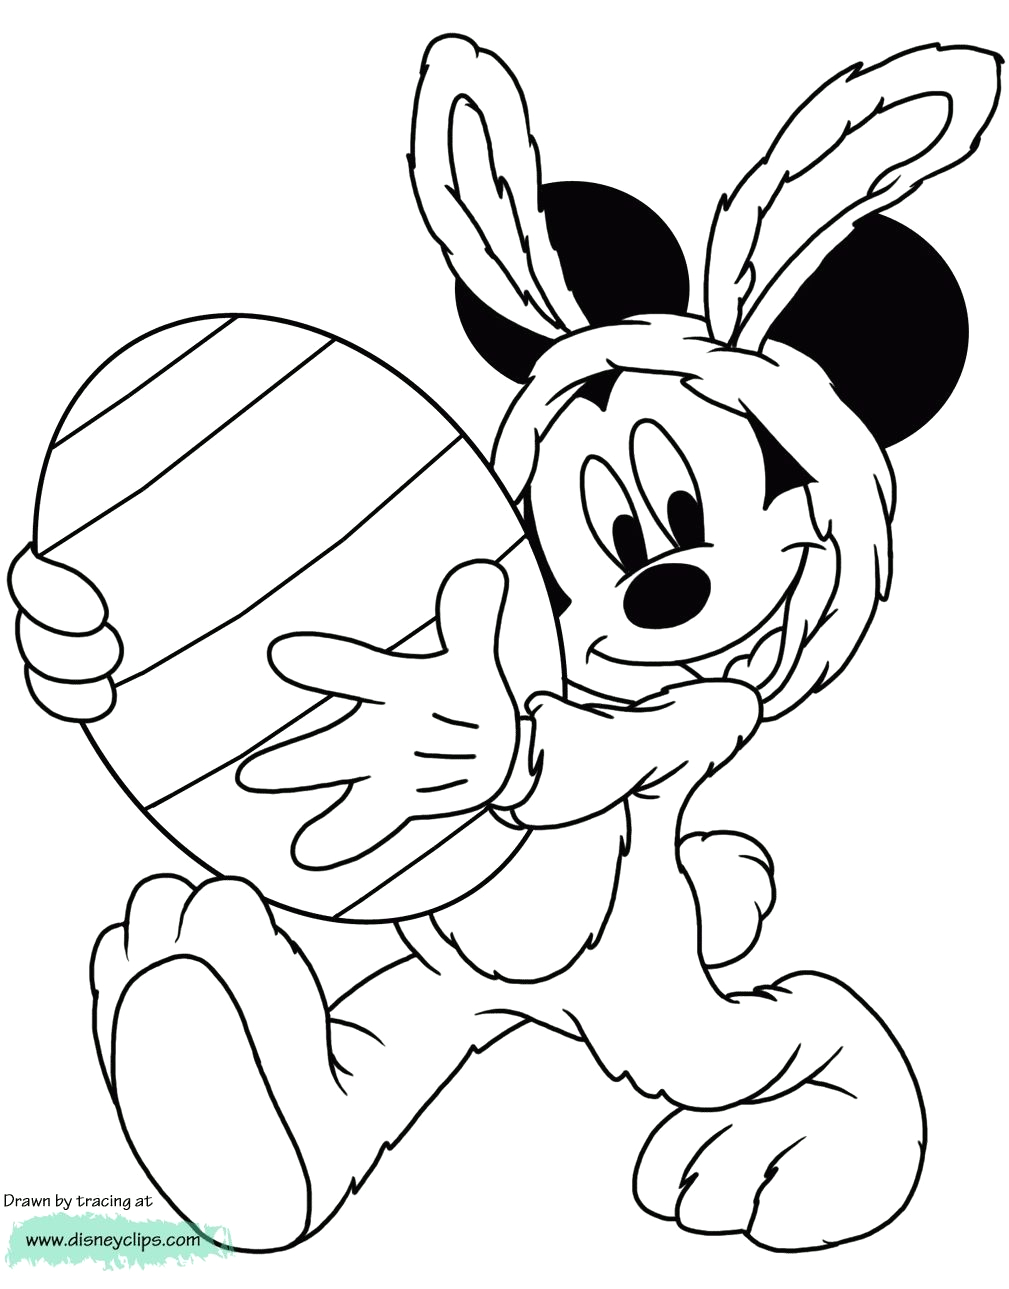 Mickey Mouse Easter Coloring Pages to Print Mickey Mouse Easter Coloring Pages to Print Coloring